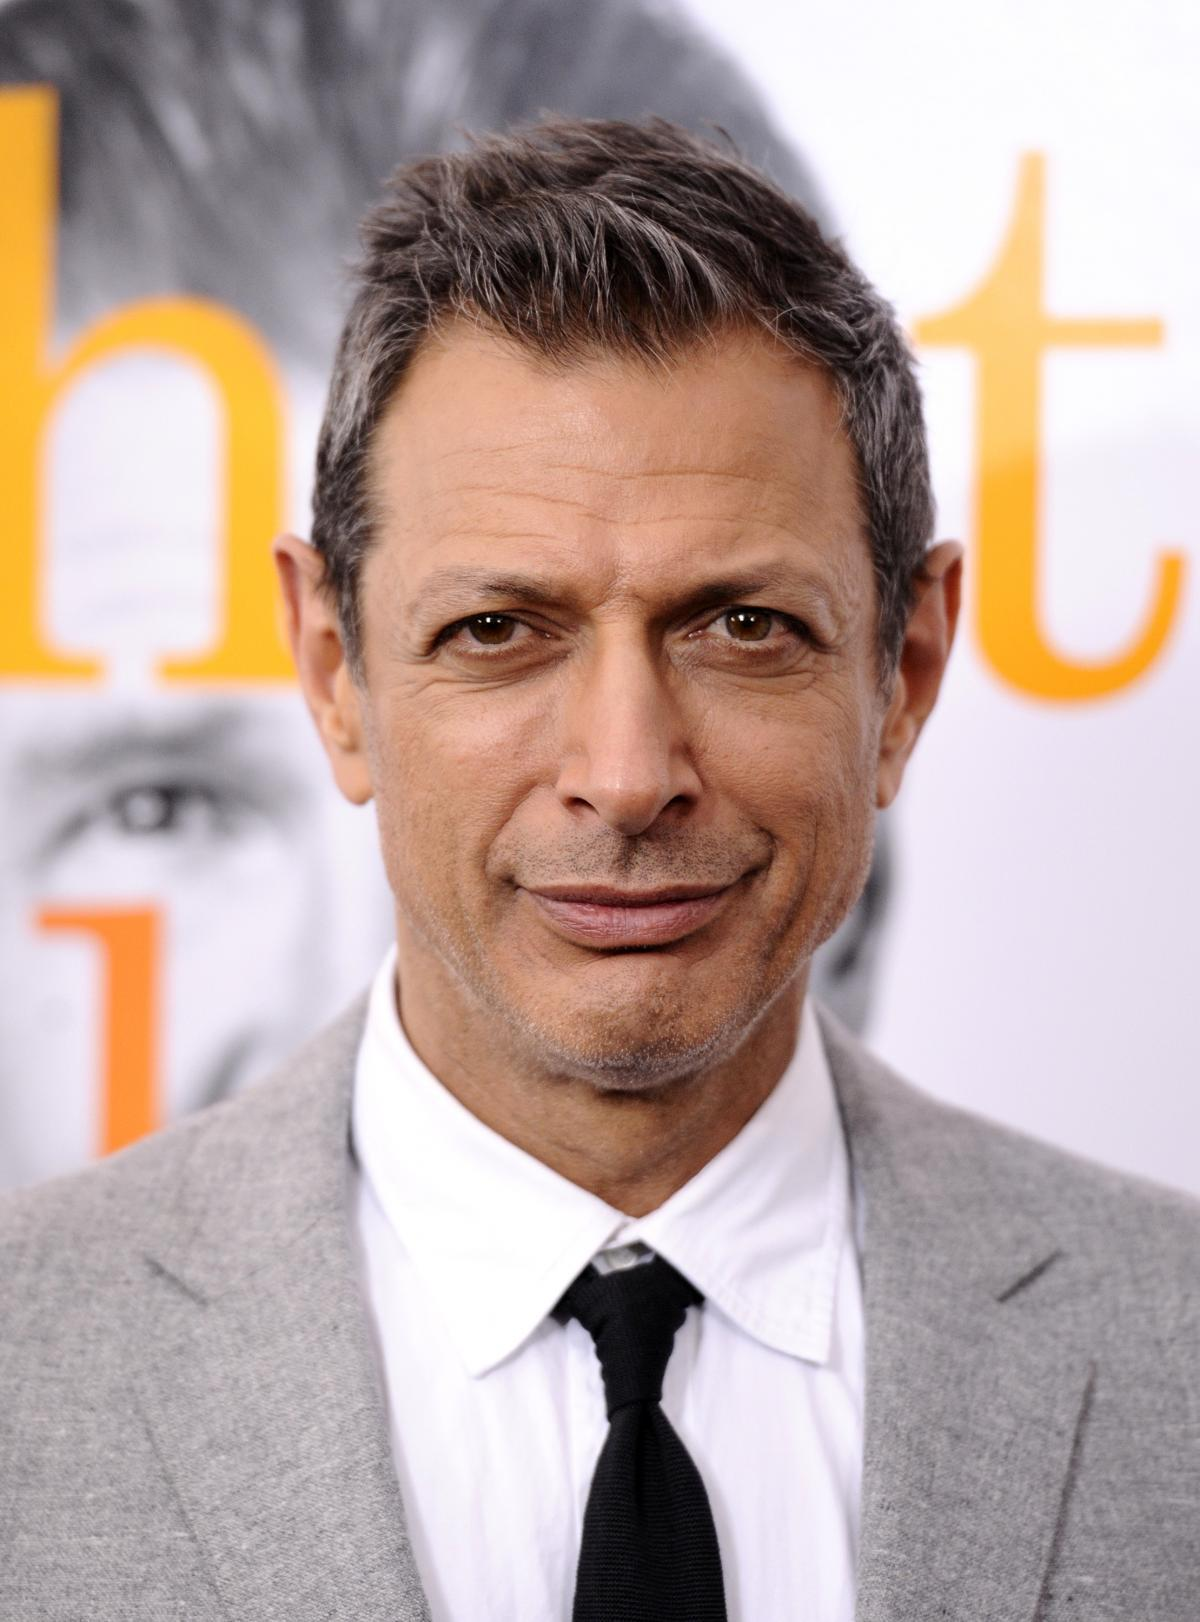 Pictures of Jeff Goldblum